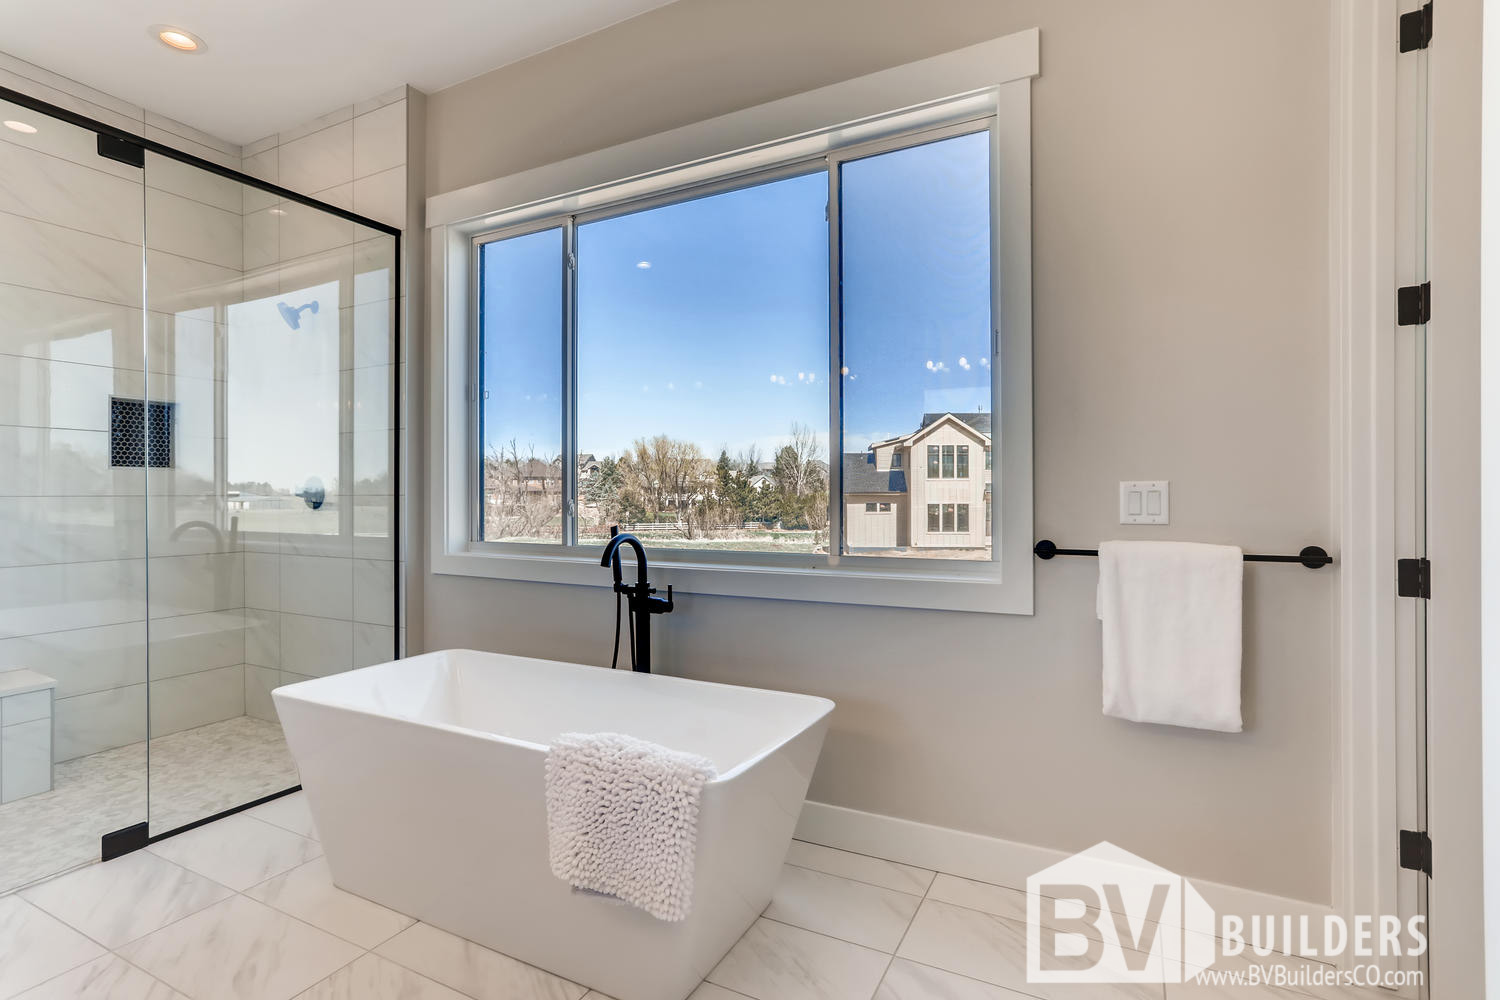 Modern farmhouse master bathroom with soaker tub and glass shower door